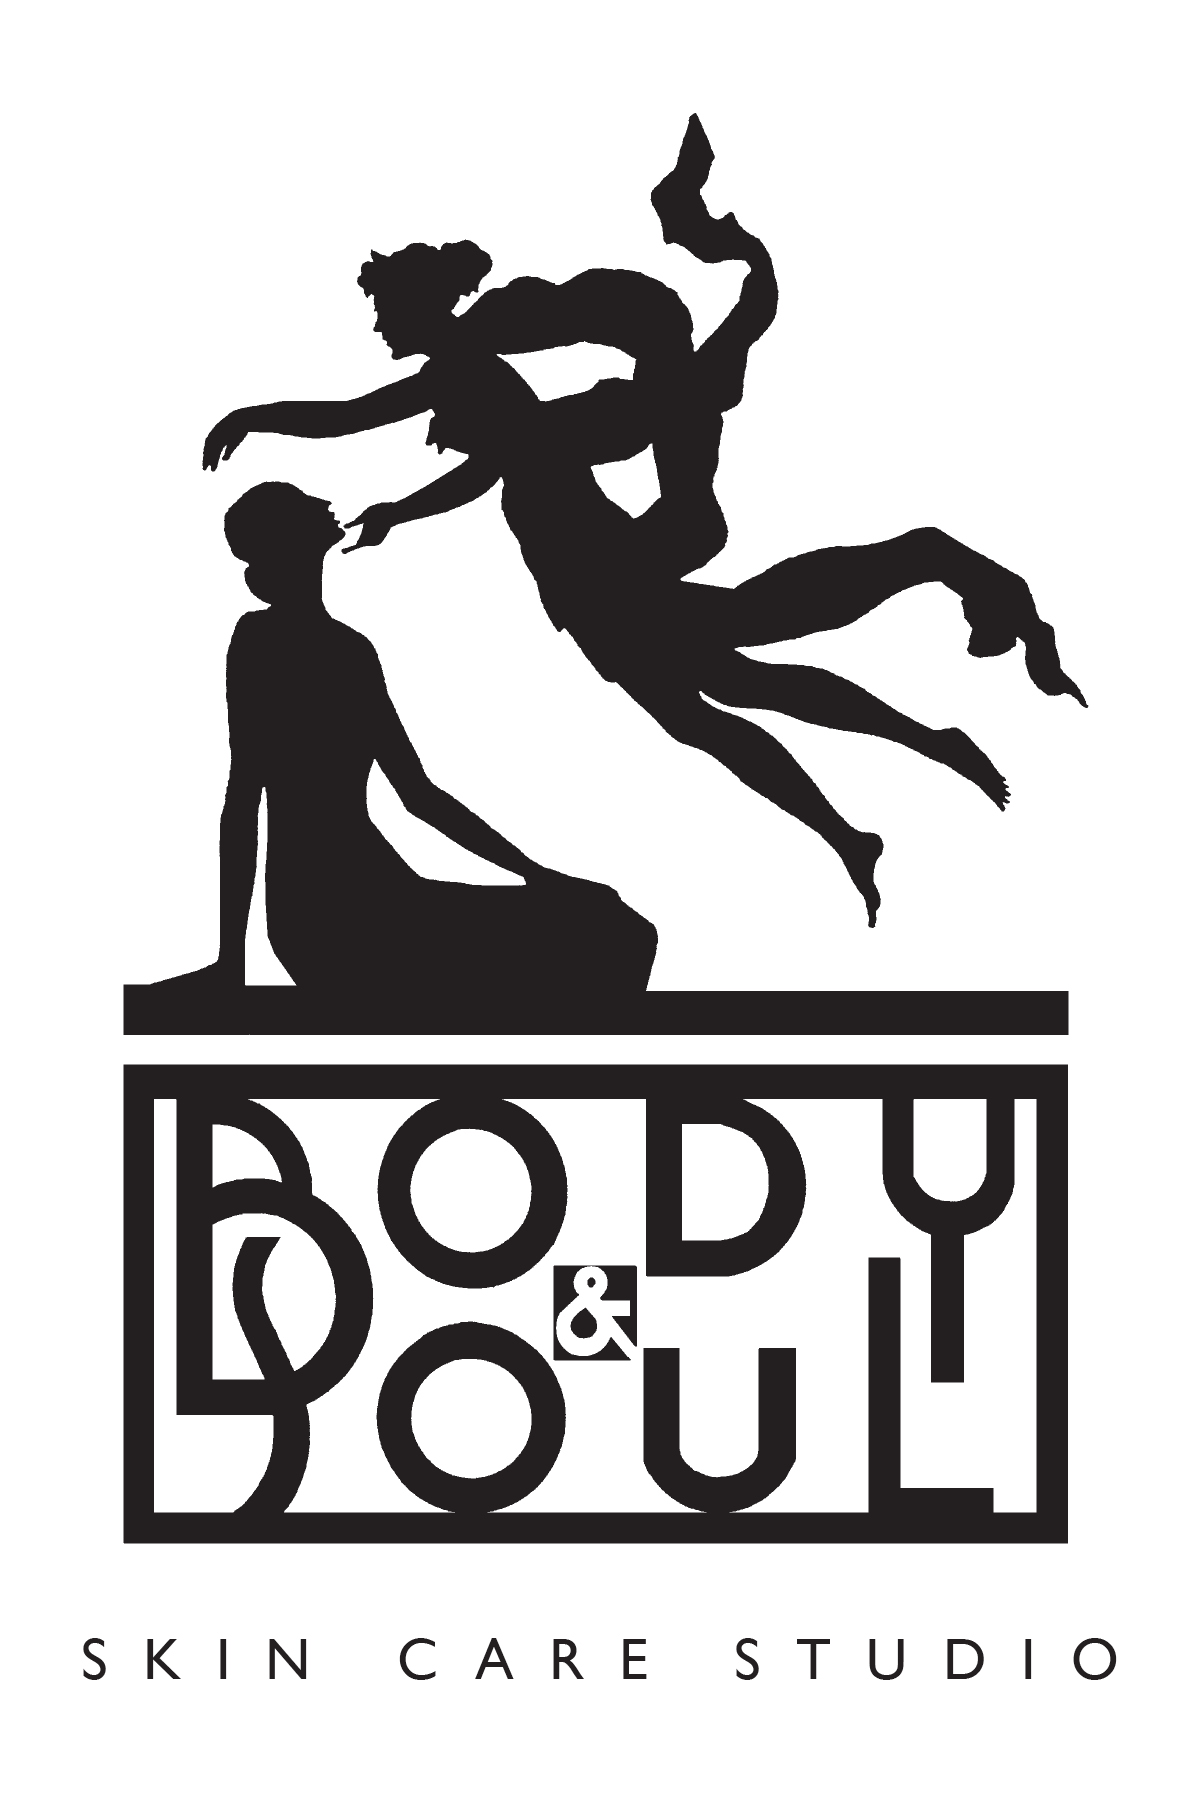 Body & Soul Skin Care Studio